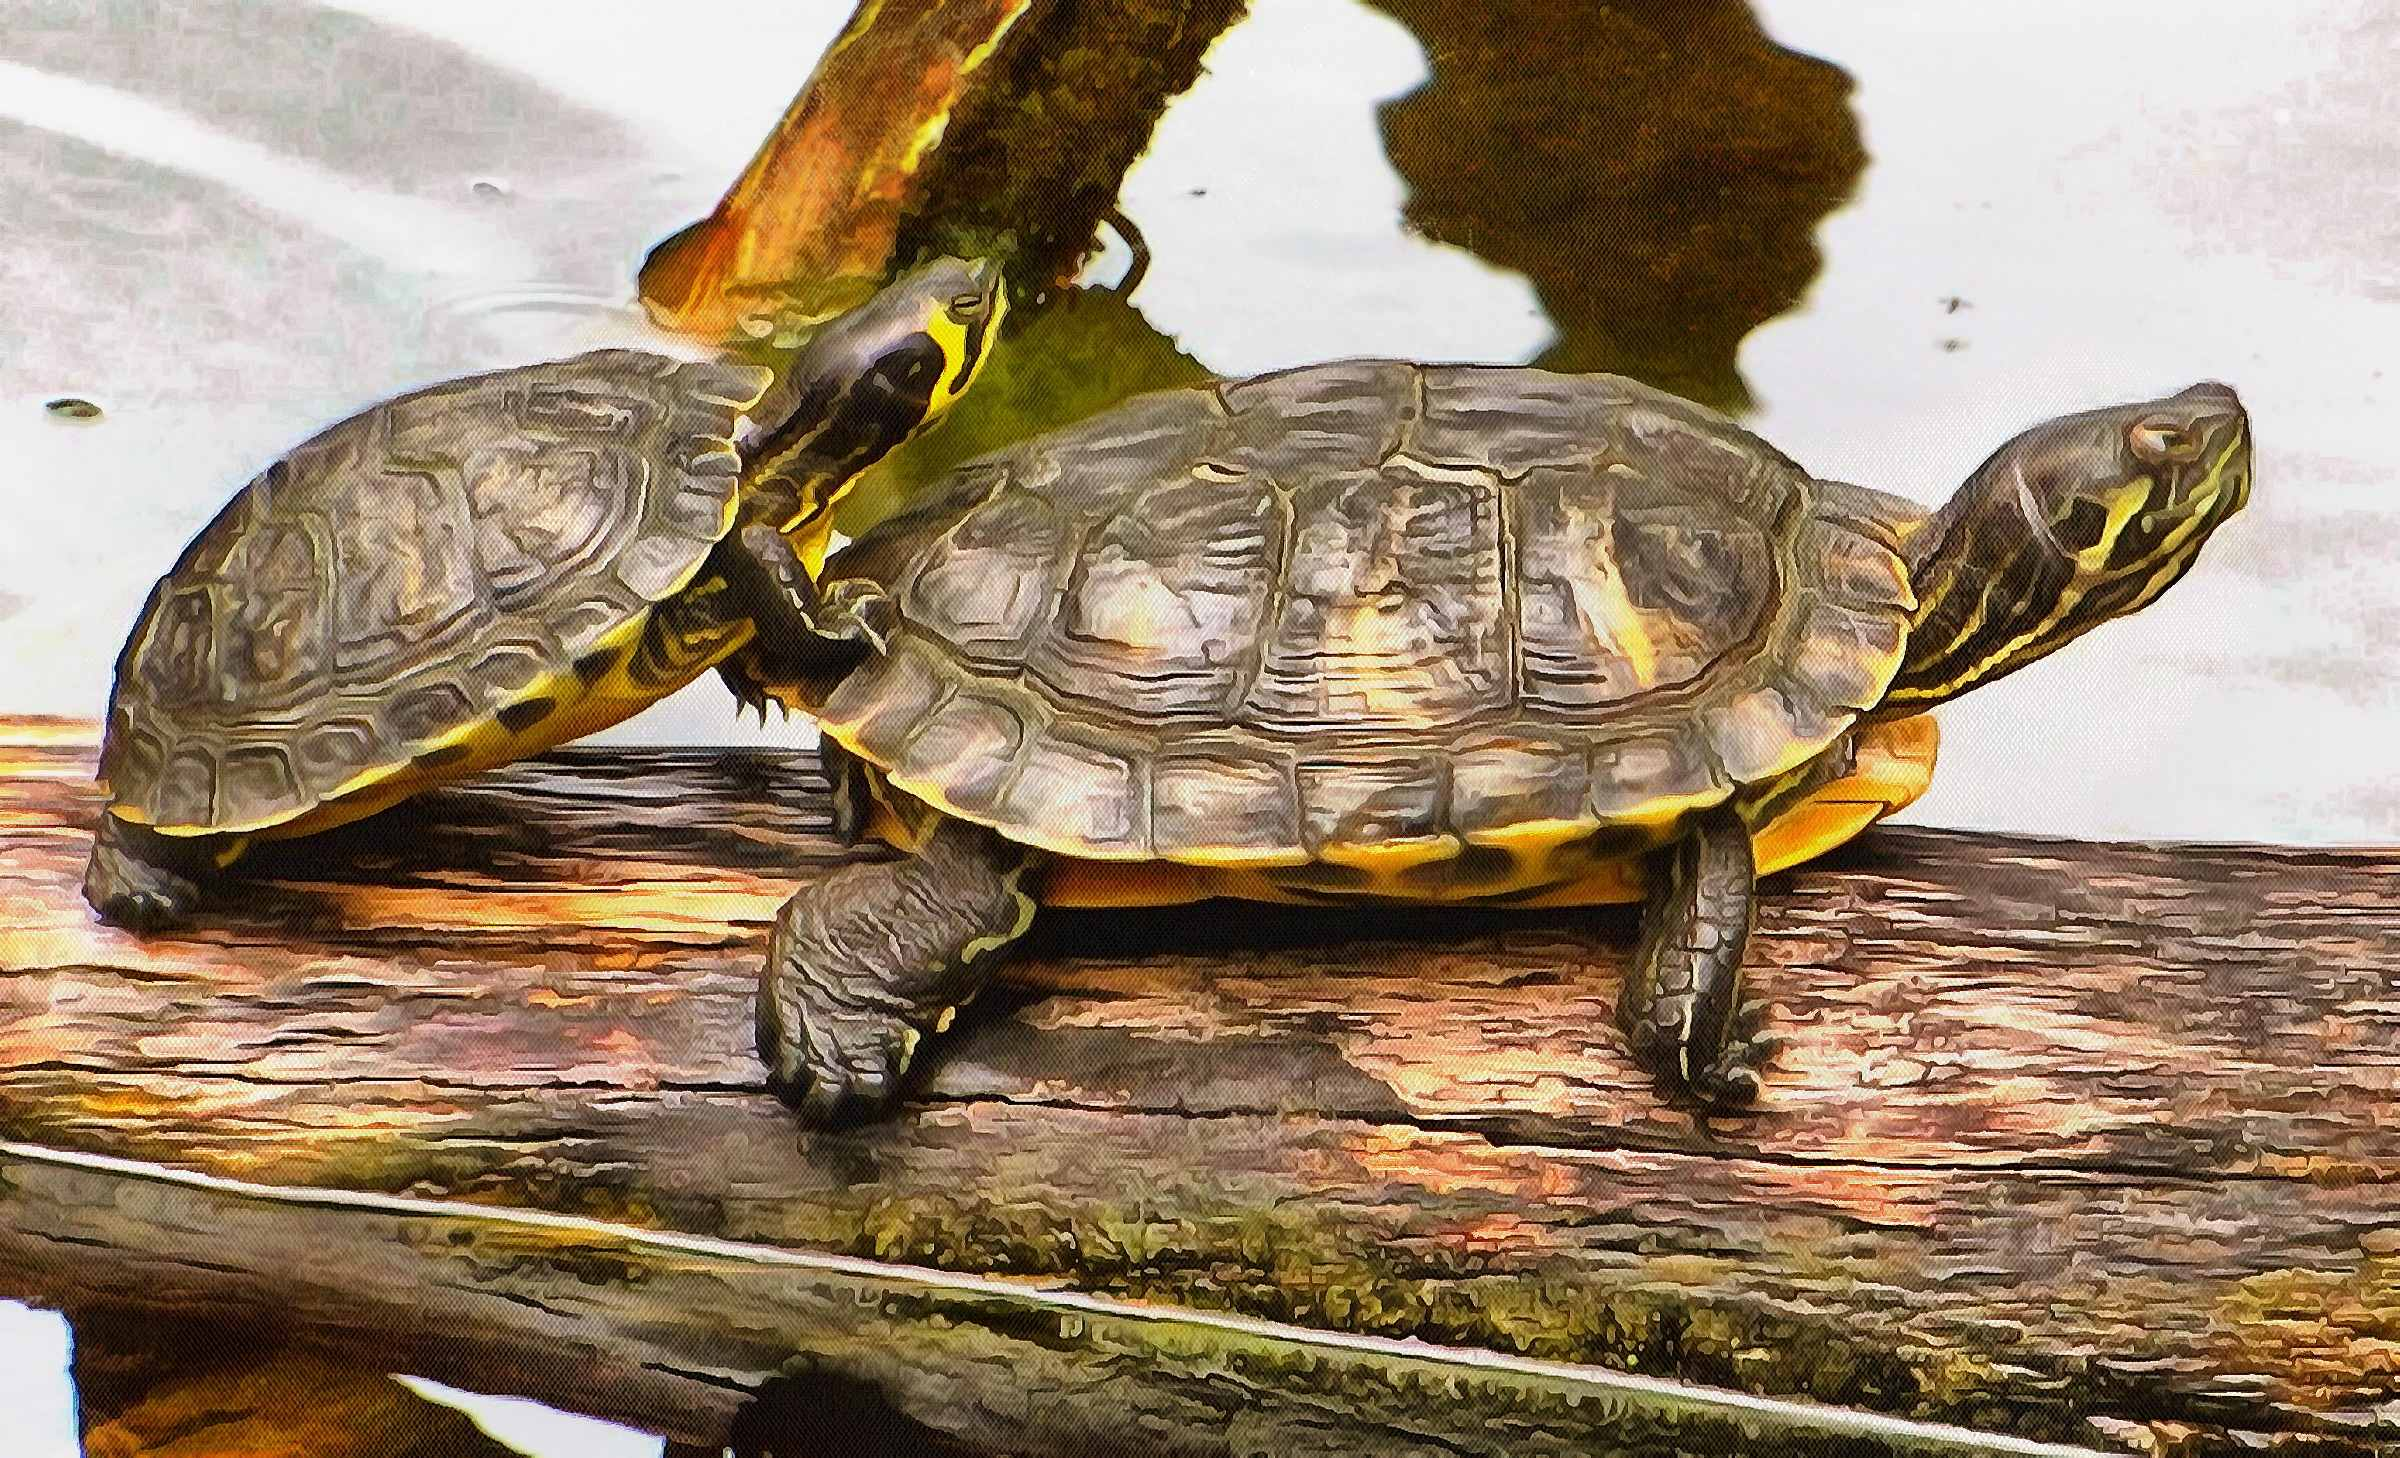 Turtle free images, Free Tortoise images, – free images turtles, tortoise public domain images, Turtle public domain images, Tortoise free!